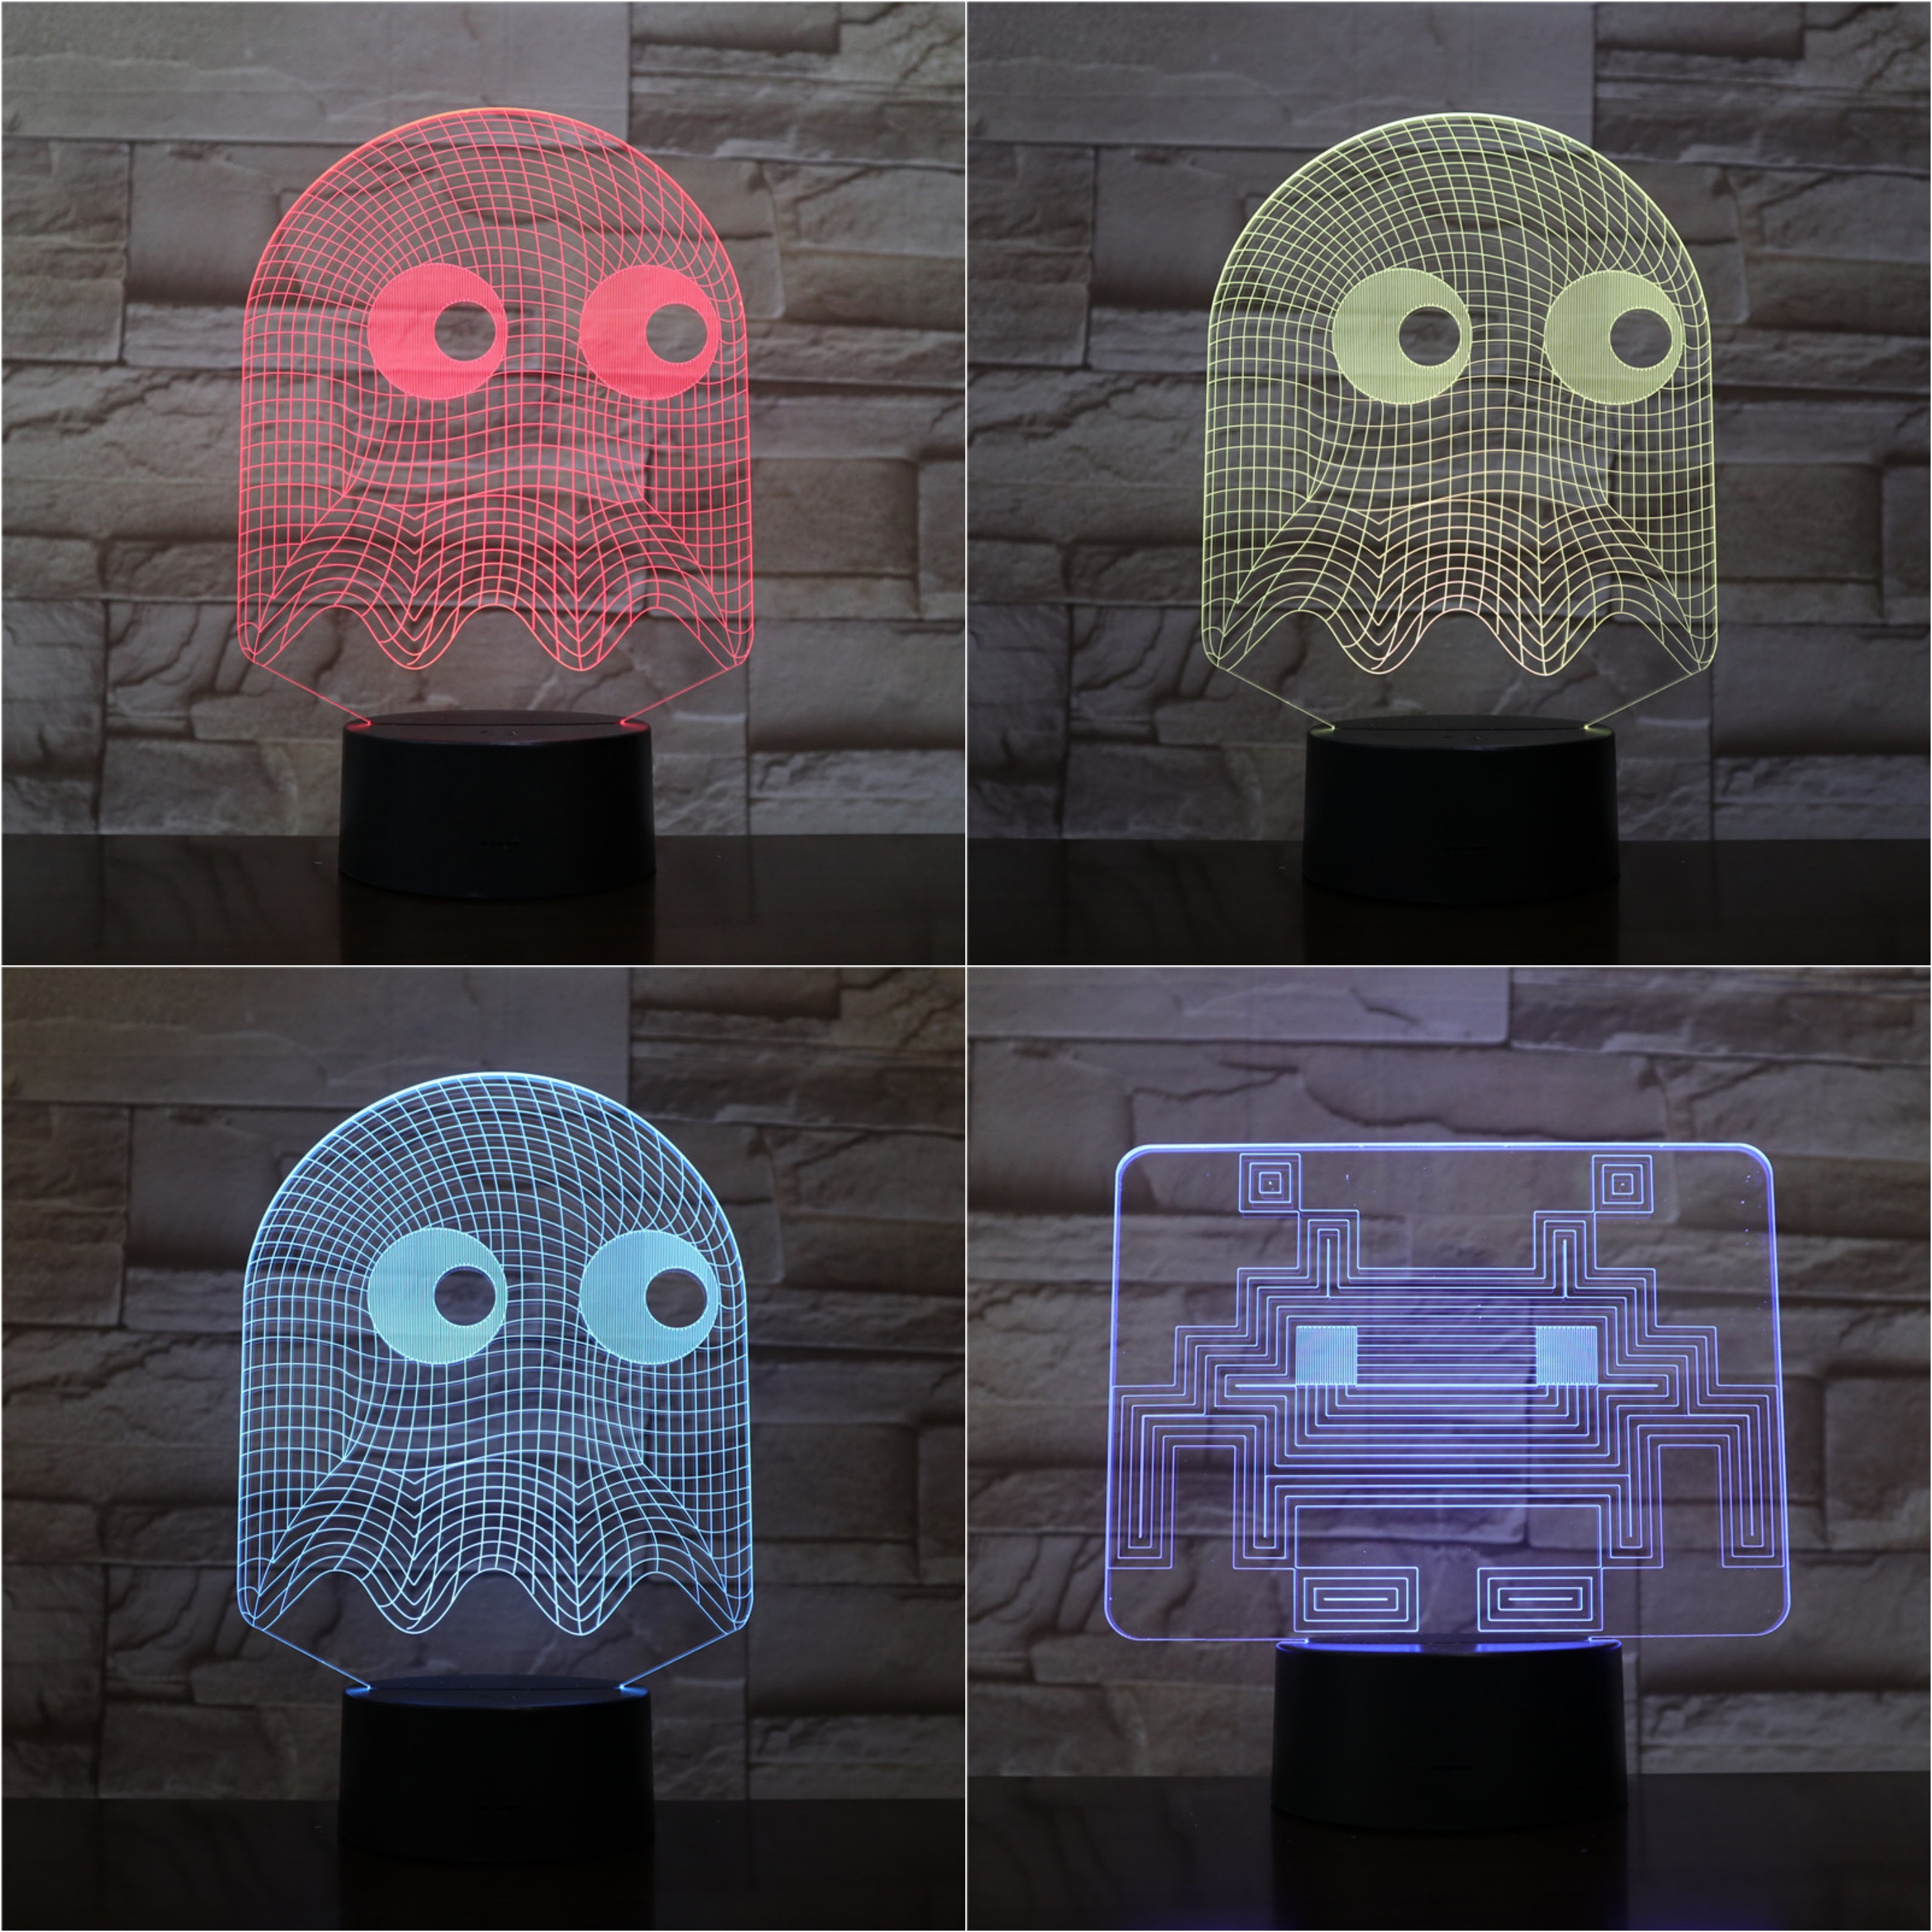 Game PAC MAN Night Light LED 3D Bedroom Decorative Lamp Illusion Child Kids Baby Kit Blinky Inky Clyde Ghost PAC MAN Lamp TableGame PAC MAN Night Light LED 3D Bedroom Decorative Lamp Illusion Child Kids Baby Kit Blinky Inky Clyde Ghost PAC MAN Lamp Table